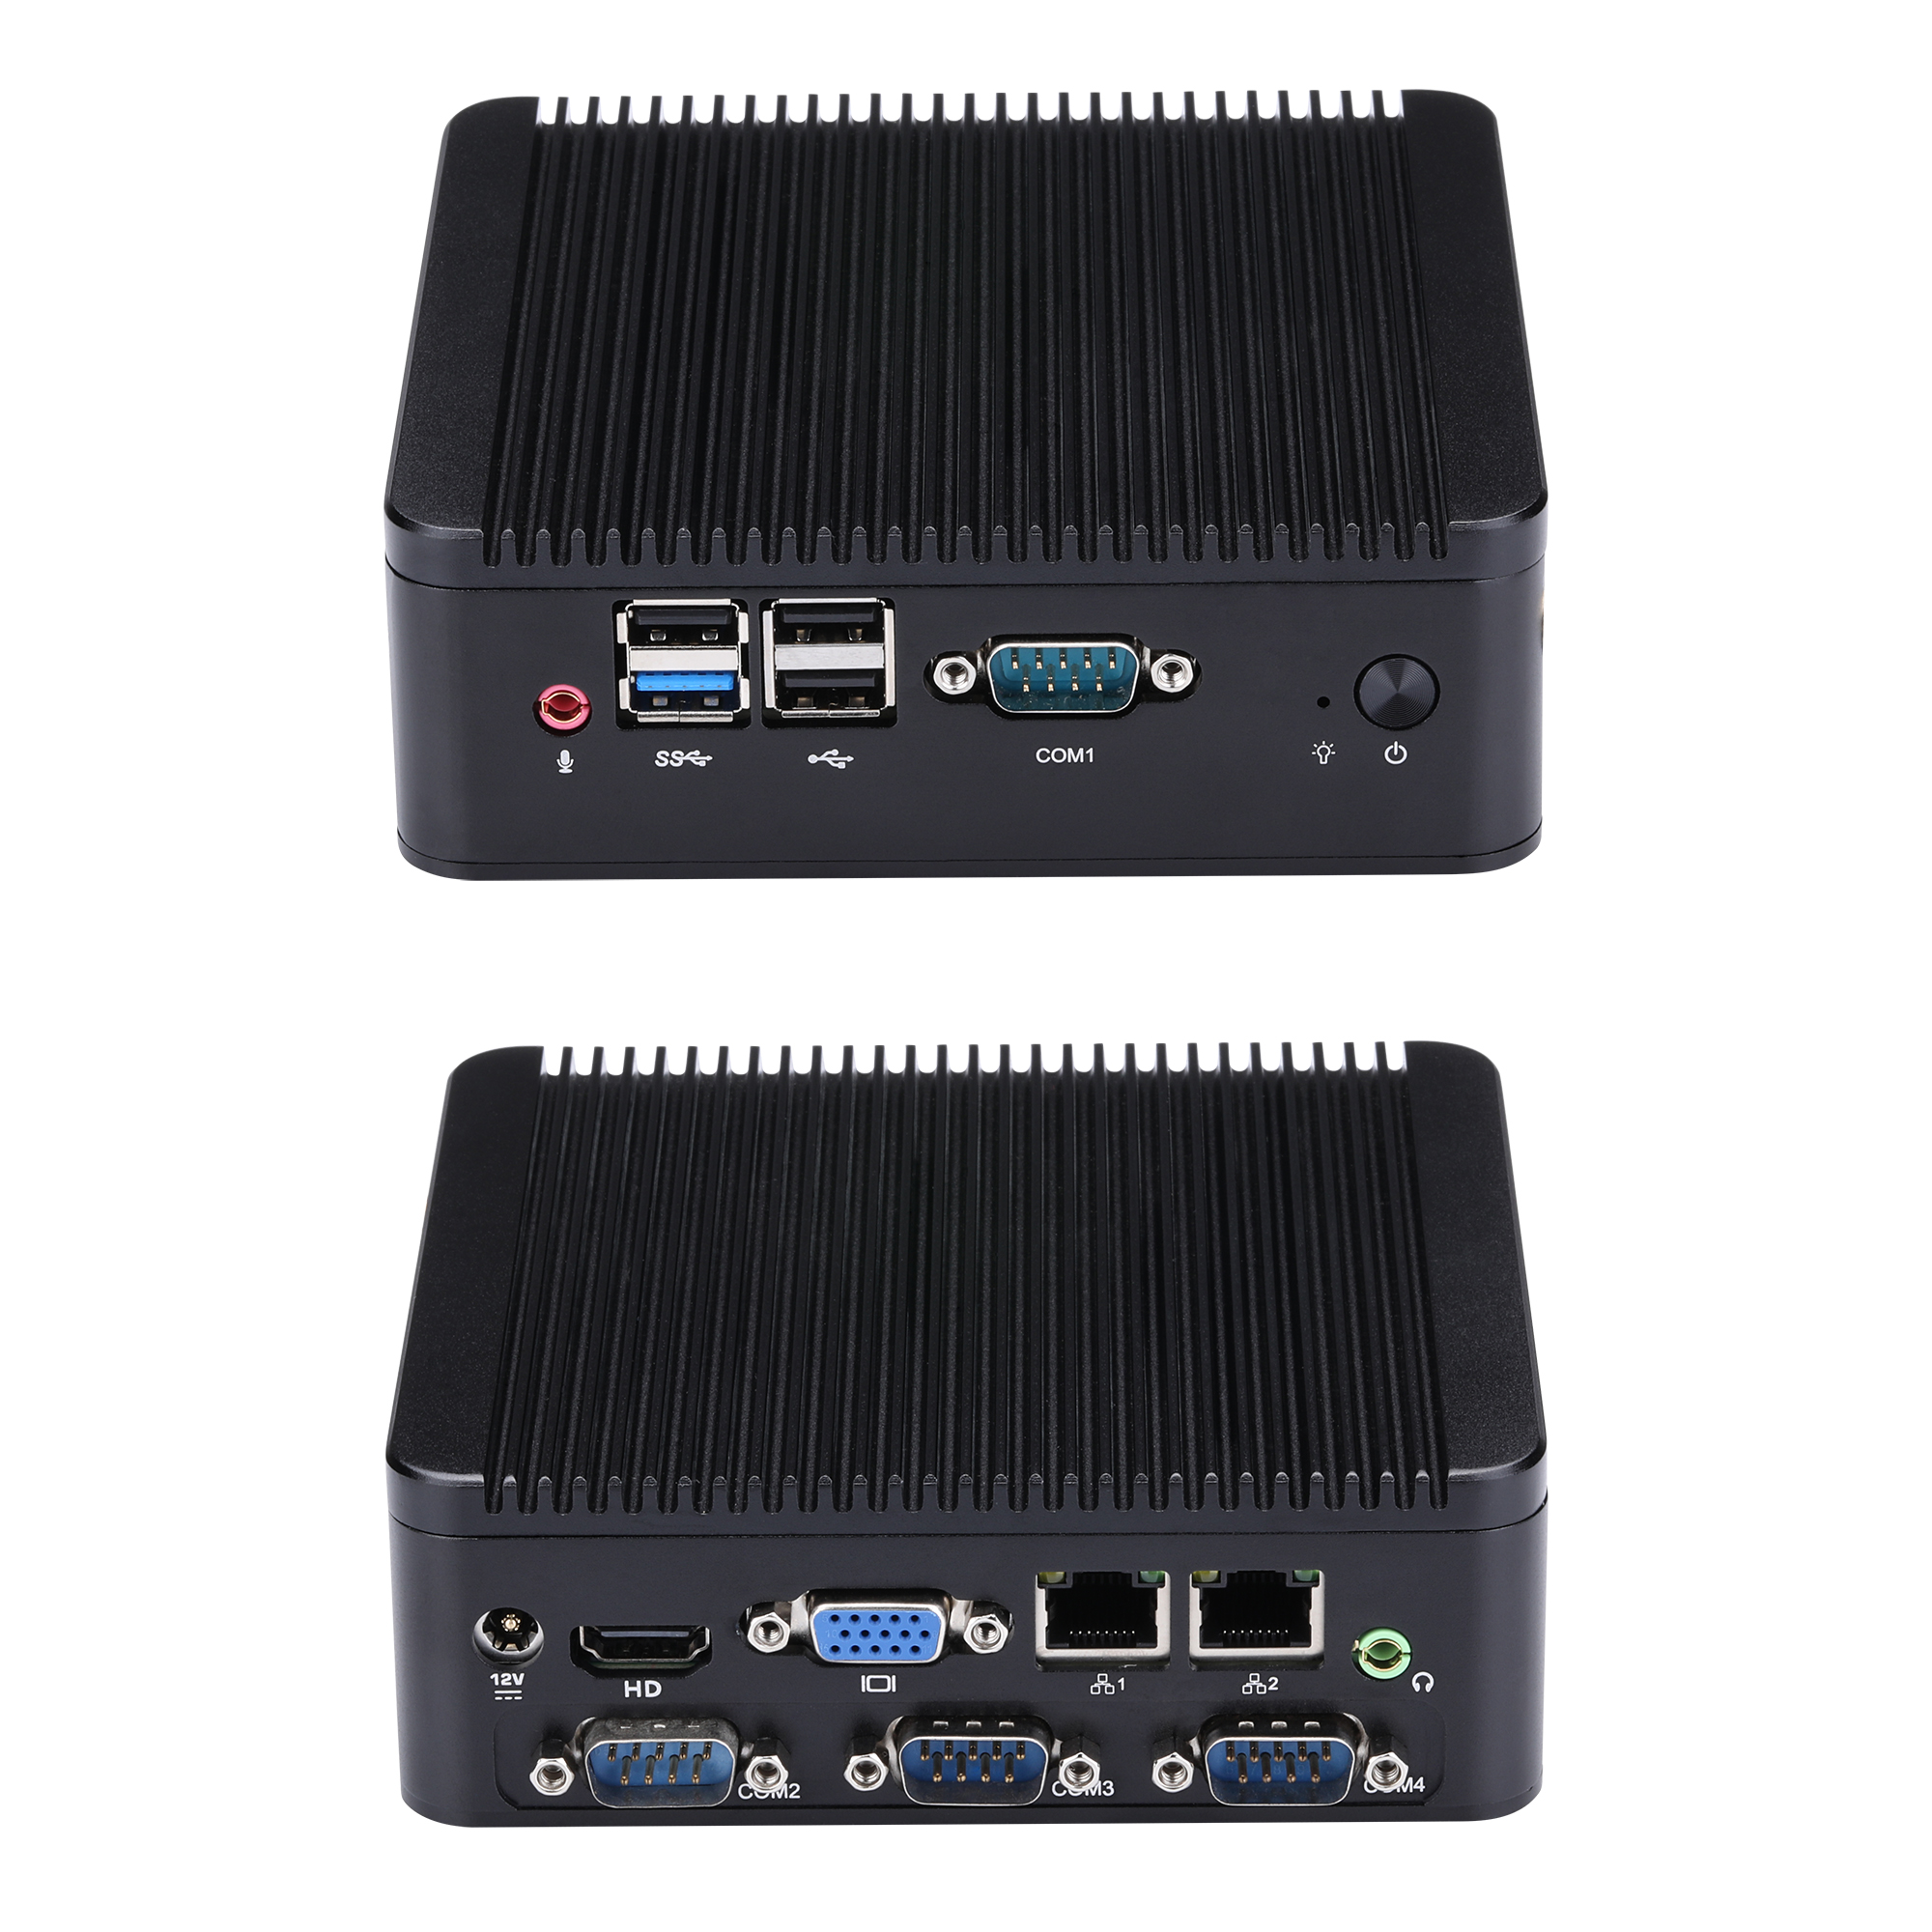 FAST 4 RS232 MINI PC J1800 J1900 Mini Living Room PC / HTPC Host / Industrial Computer Celeron Quad-Core